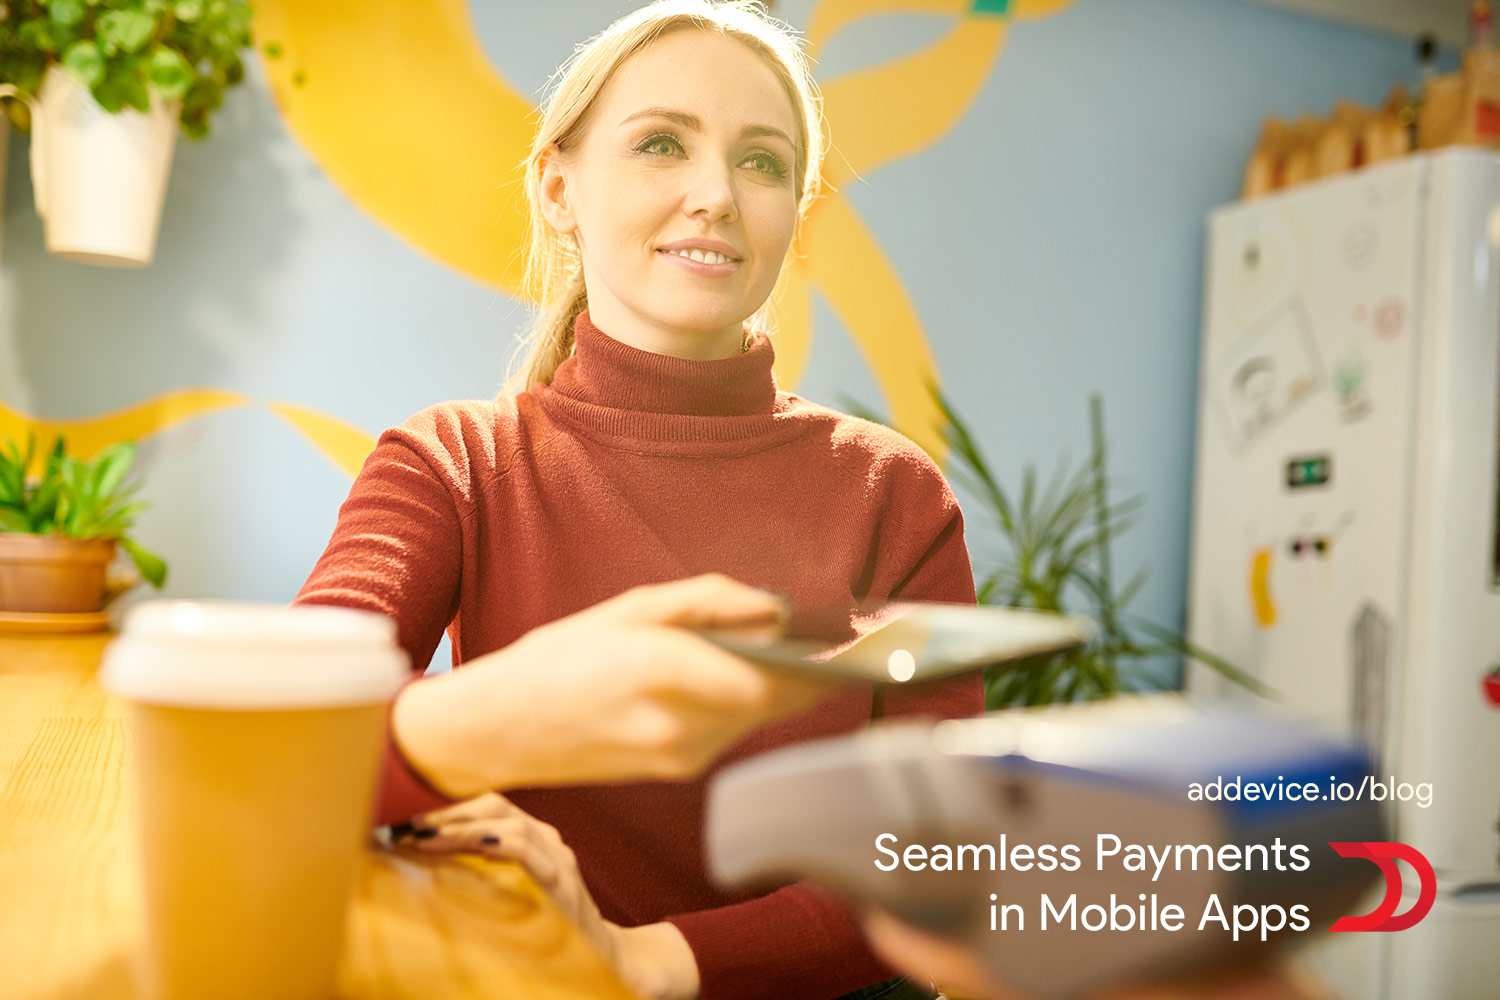 Seamless payments in mobile apps